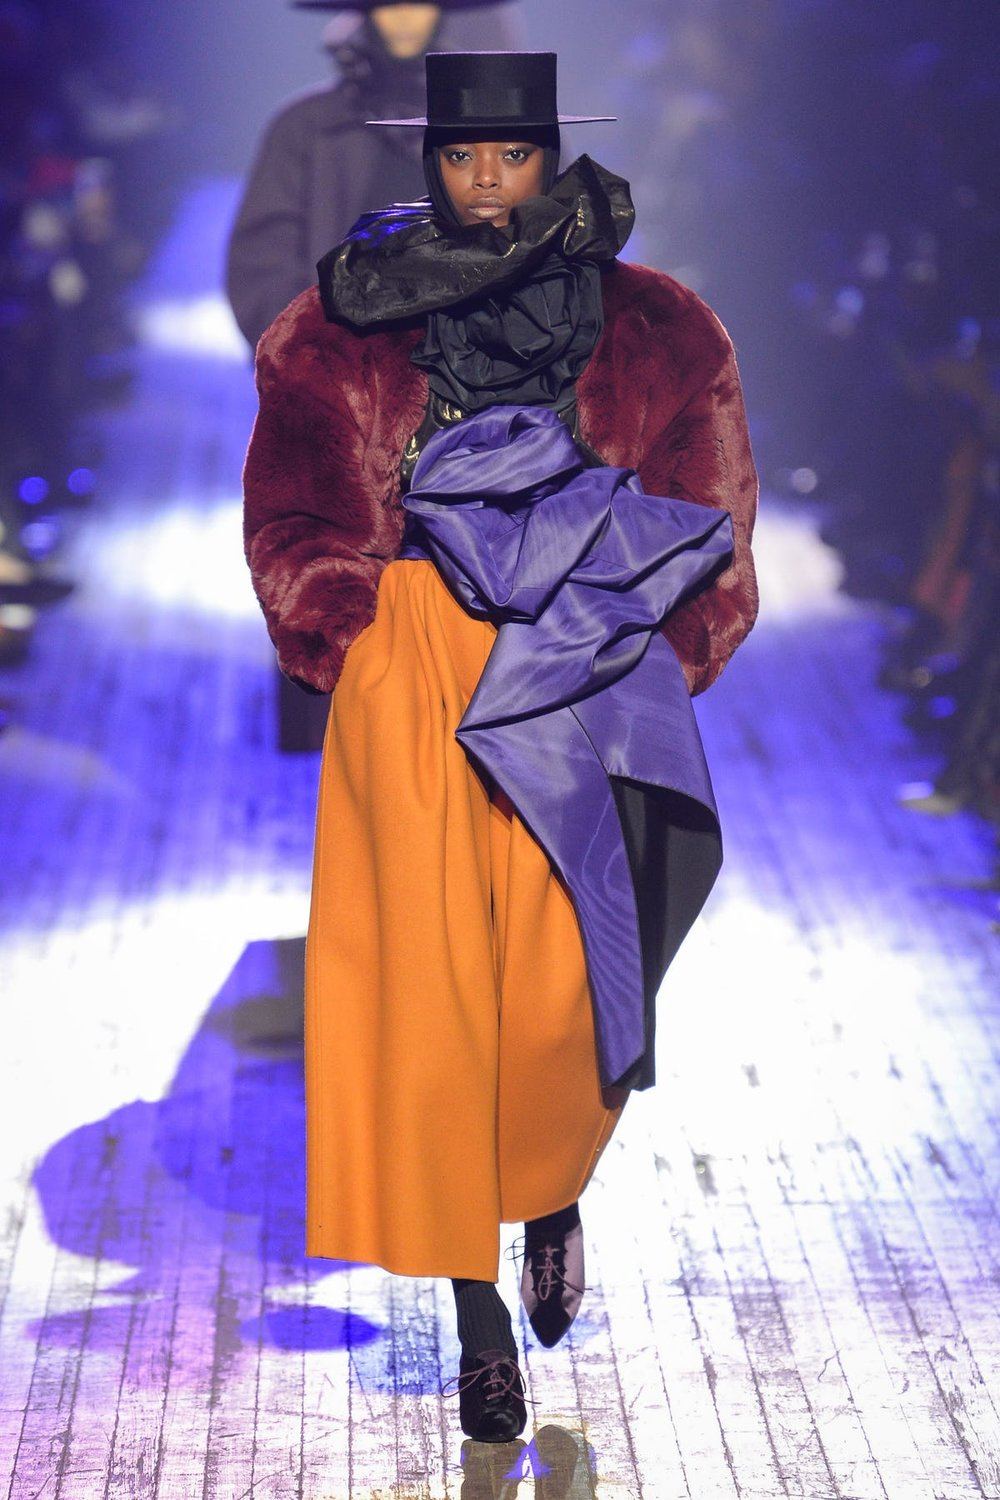 marc_jacobs_look_16_ready_to_wear_autumn_2018.jpeg